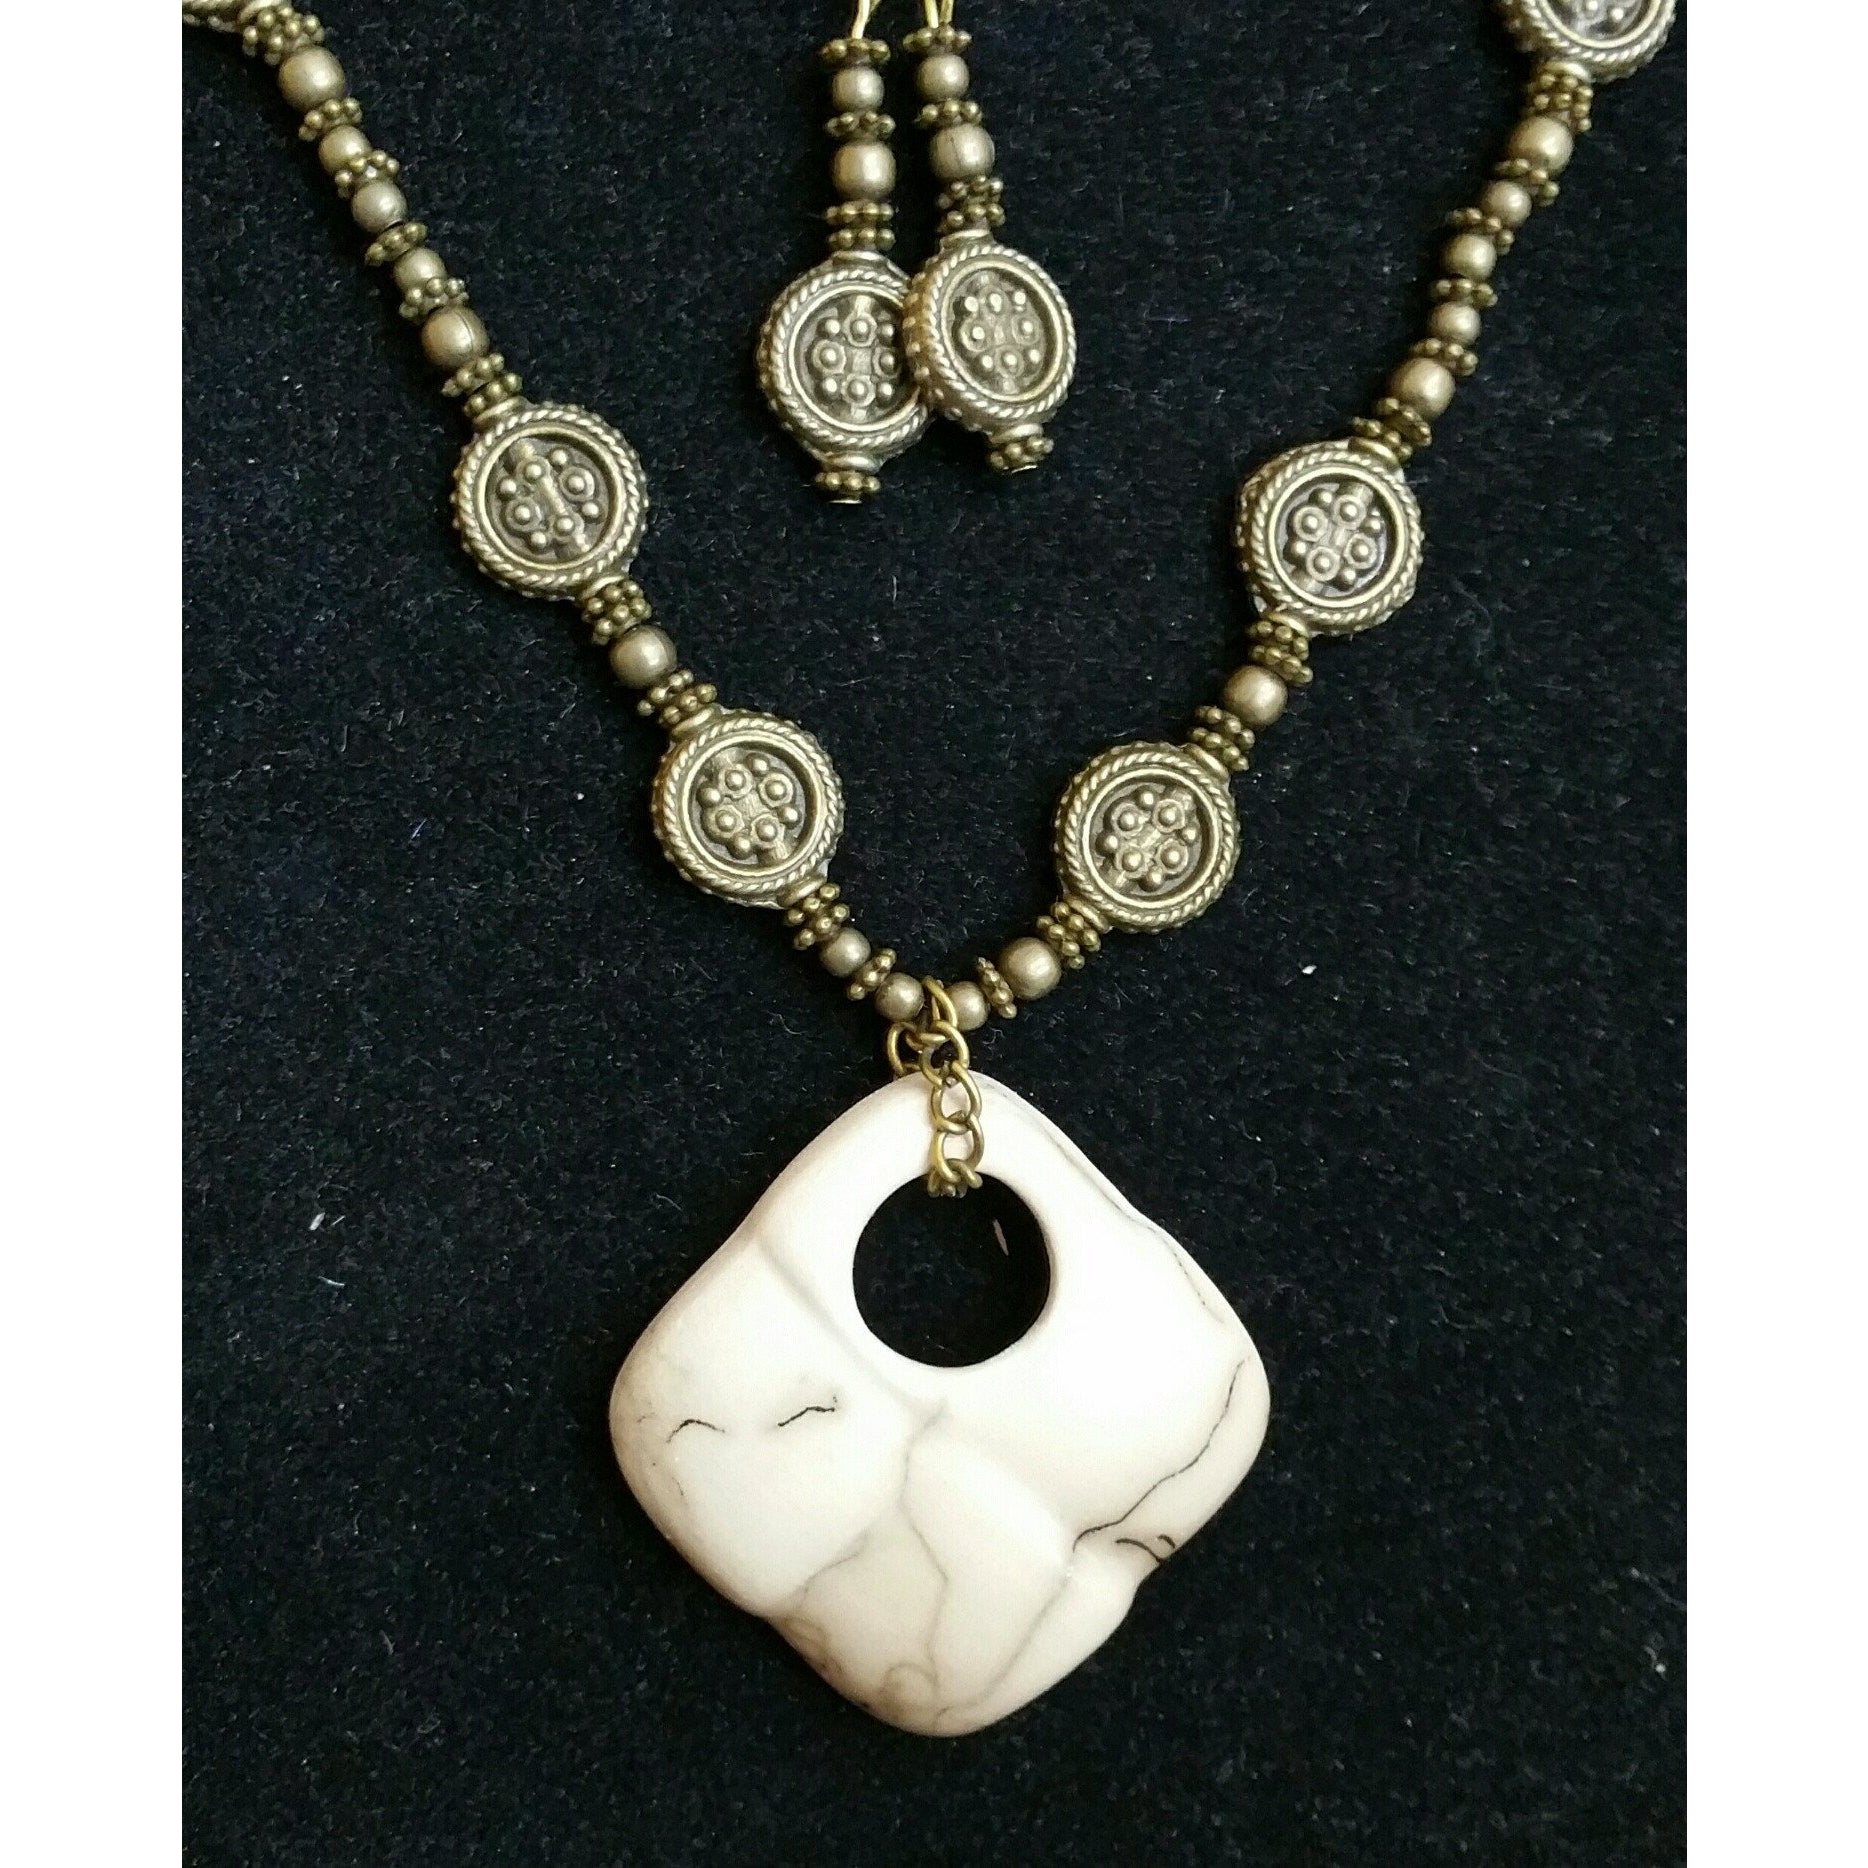 Horse Hair Fired Ceramic with Brass Necklace & Earring